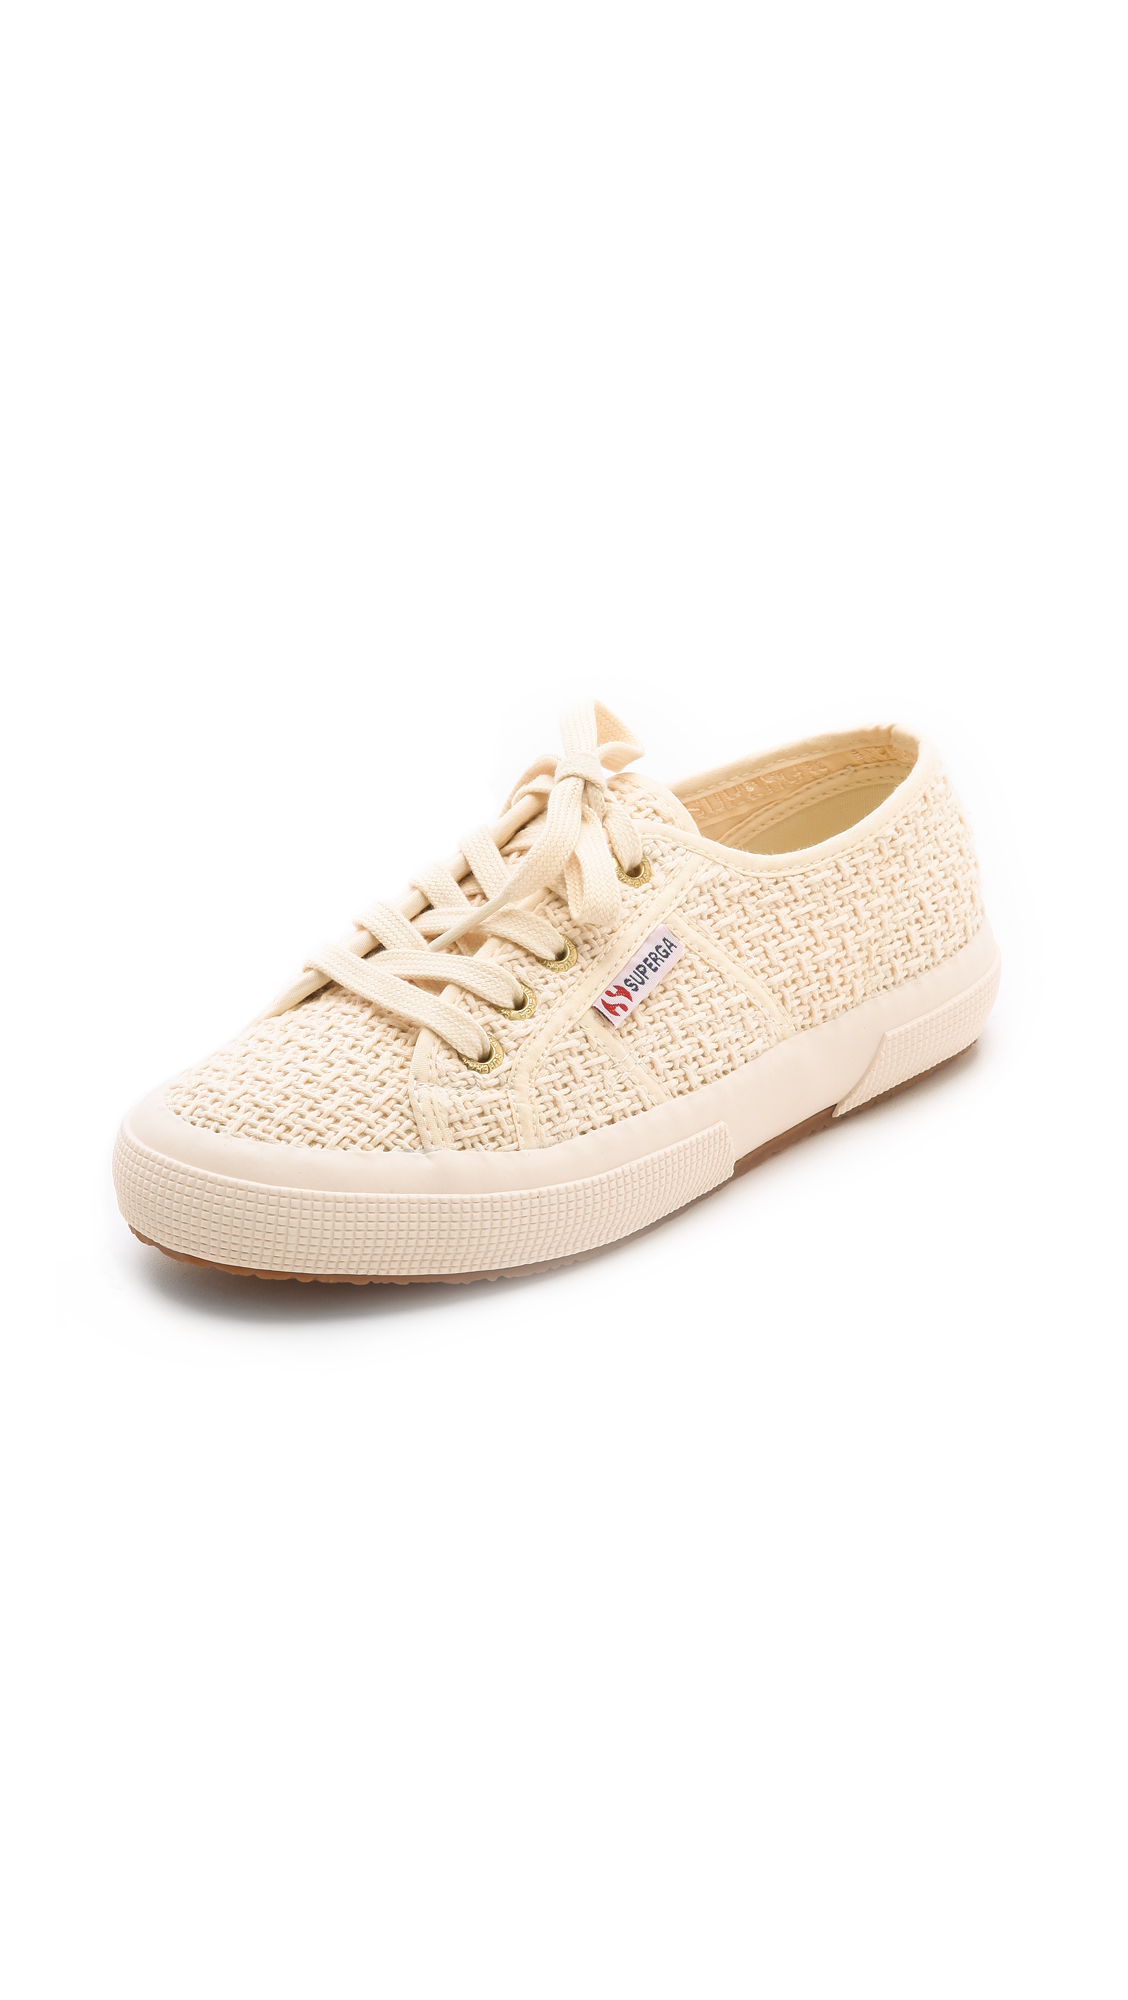 superga tweed cotu sneakers in lyst